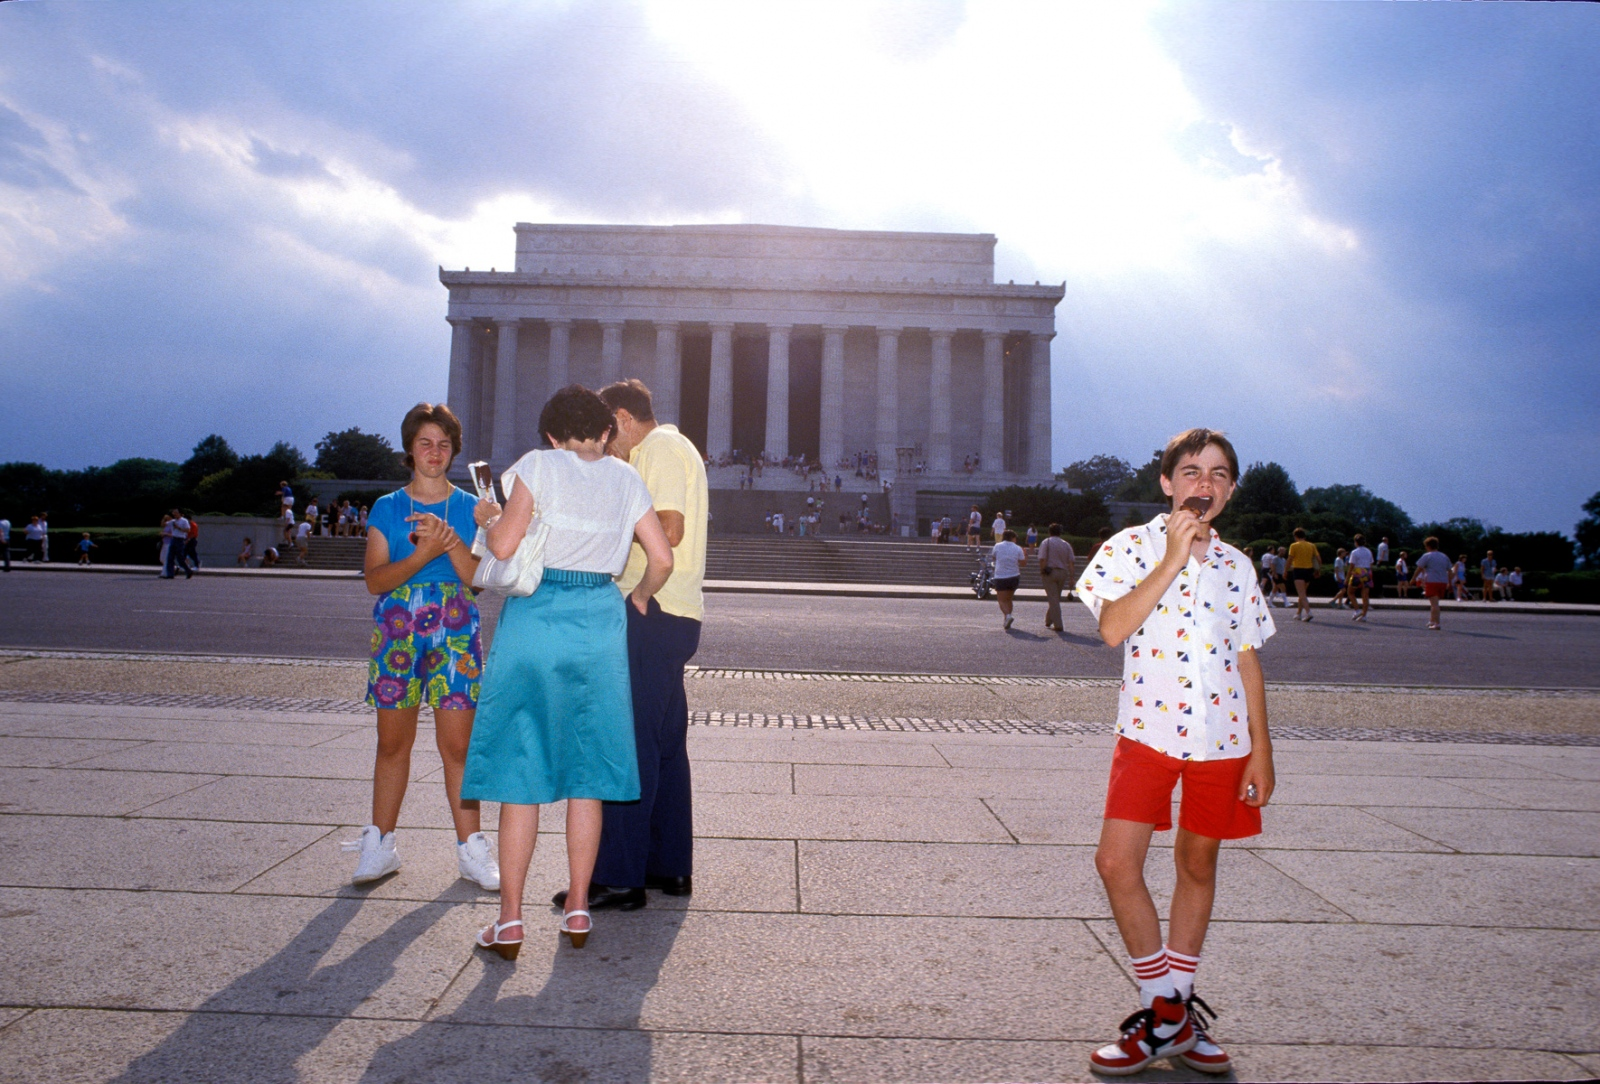 """Each summer tourist slurp at least 1.5 million ice cream """"novelties"""" sold by roving peddlers on the Mall."""